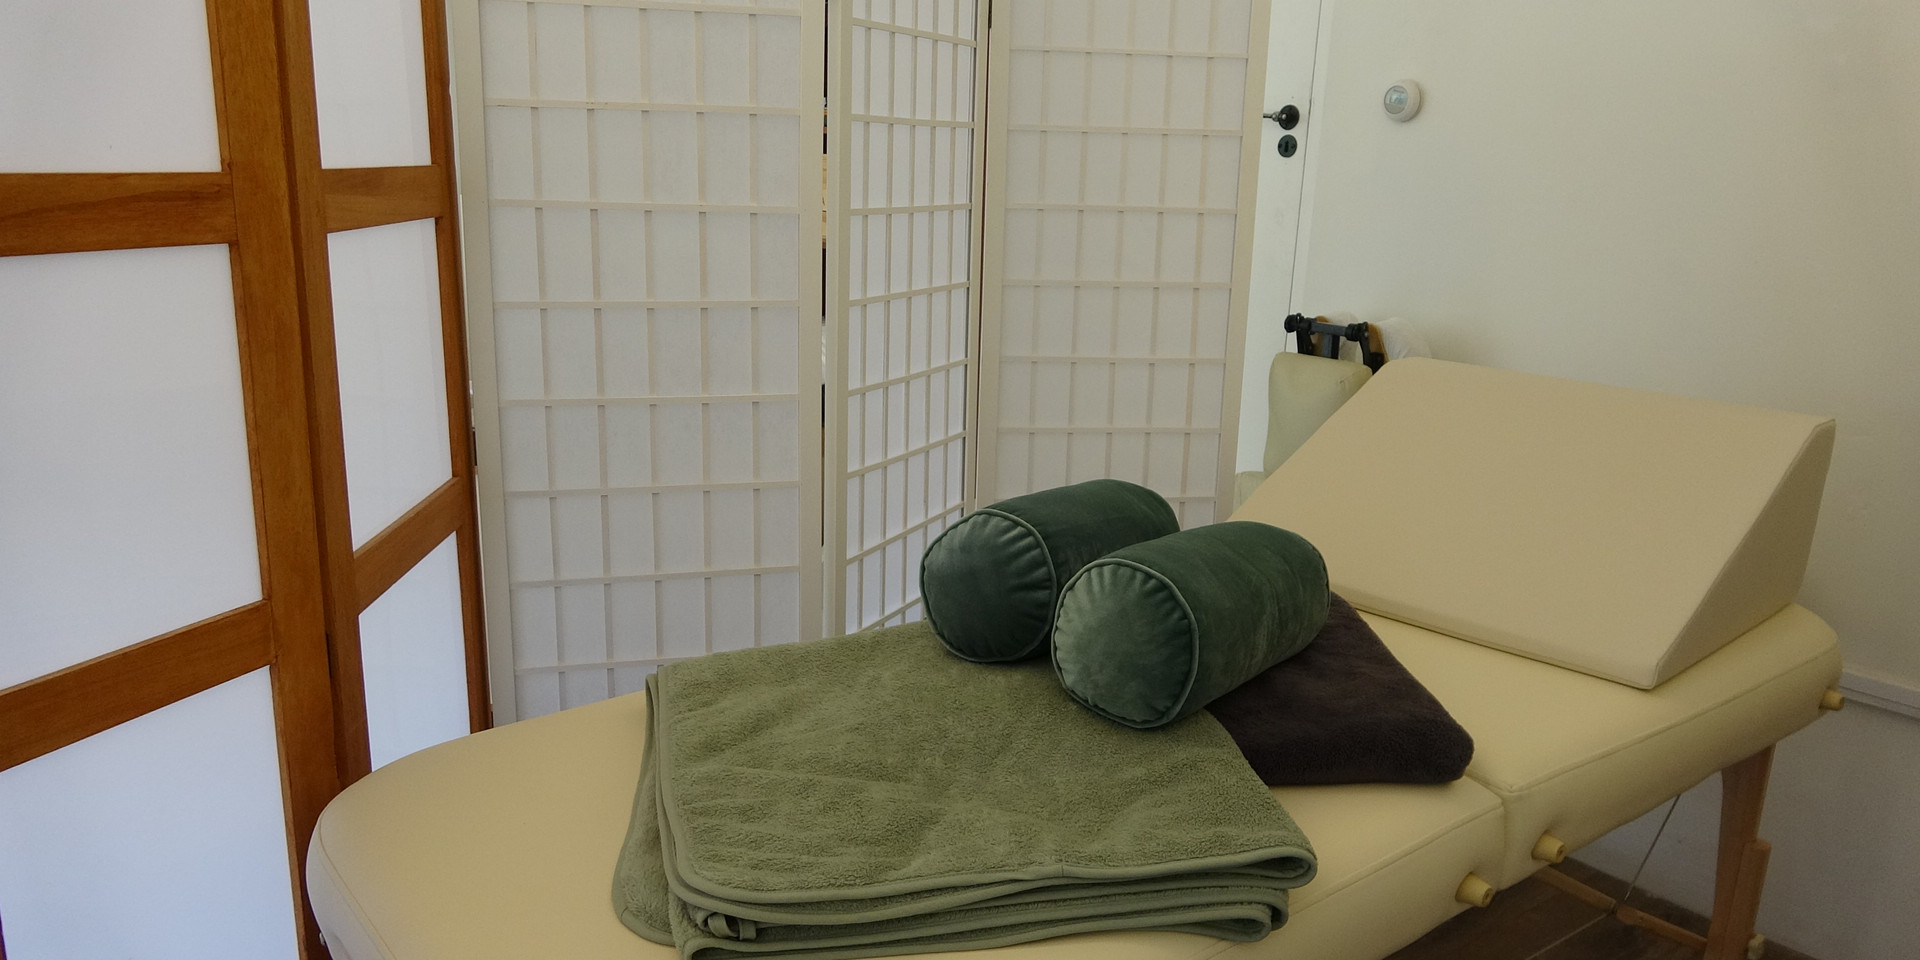 Massage and energetic healing treatments